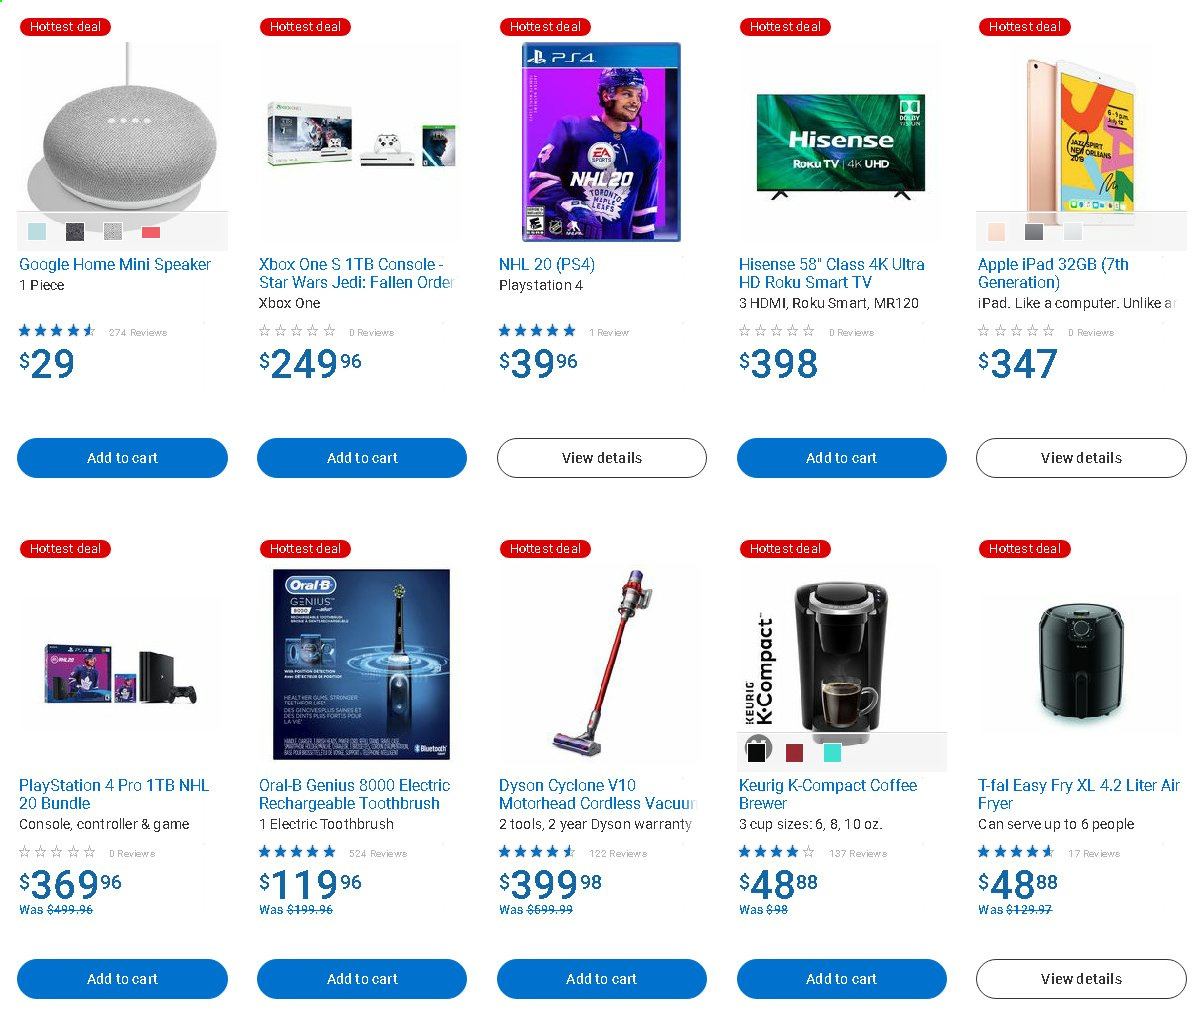 Walmart Flyer - Sales products - bundle, cart, coffee, console, controller, cup, electric toothbrush, fryer, roku, roku tv, smart tv, speaker, toothbrush, uhd tv, ultra hd, xbox one, hdmi, playstation, ps+, oral-b, air fryer, game, brewer, ipad, dyson, ps4, hisense, hotte, xbox, star wars, computer. Page 1.